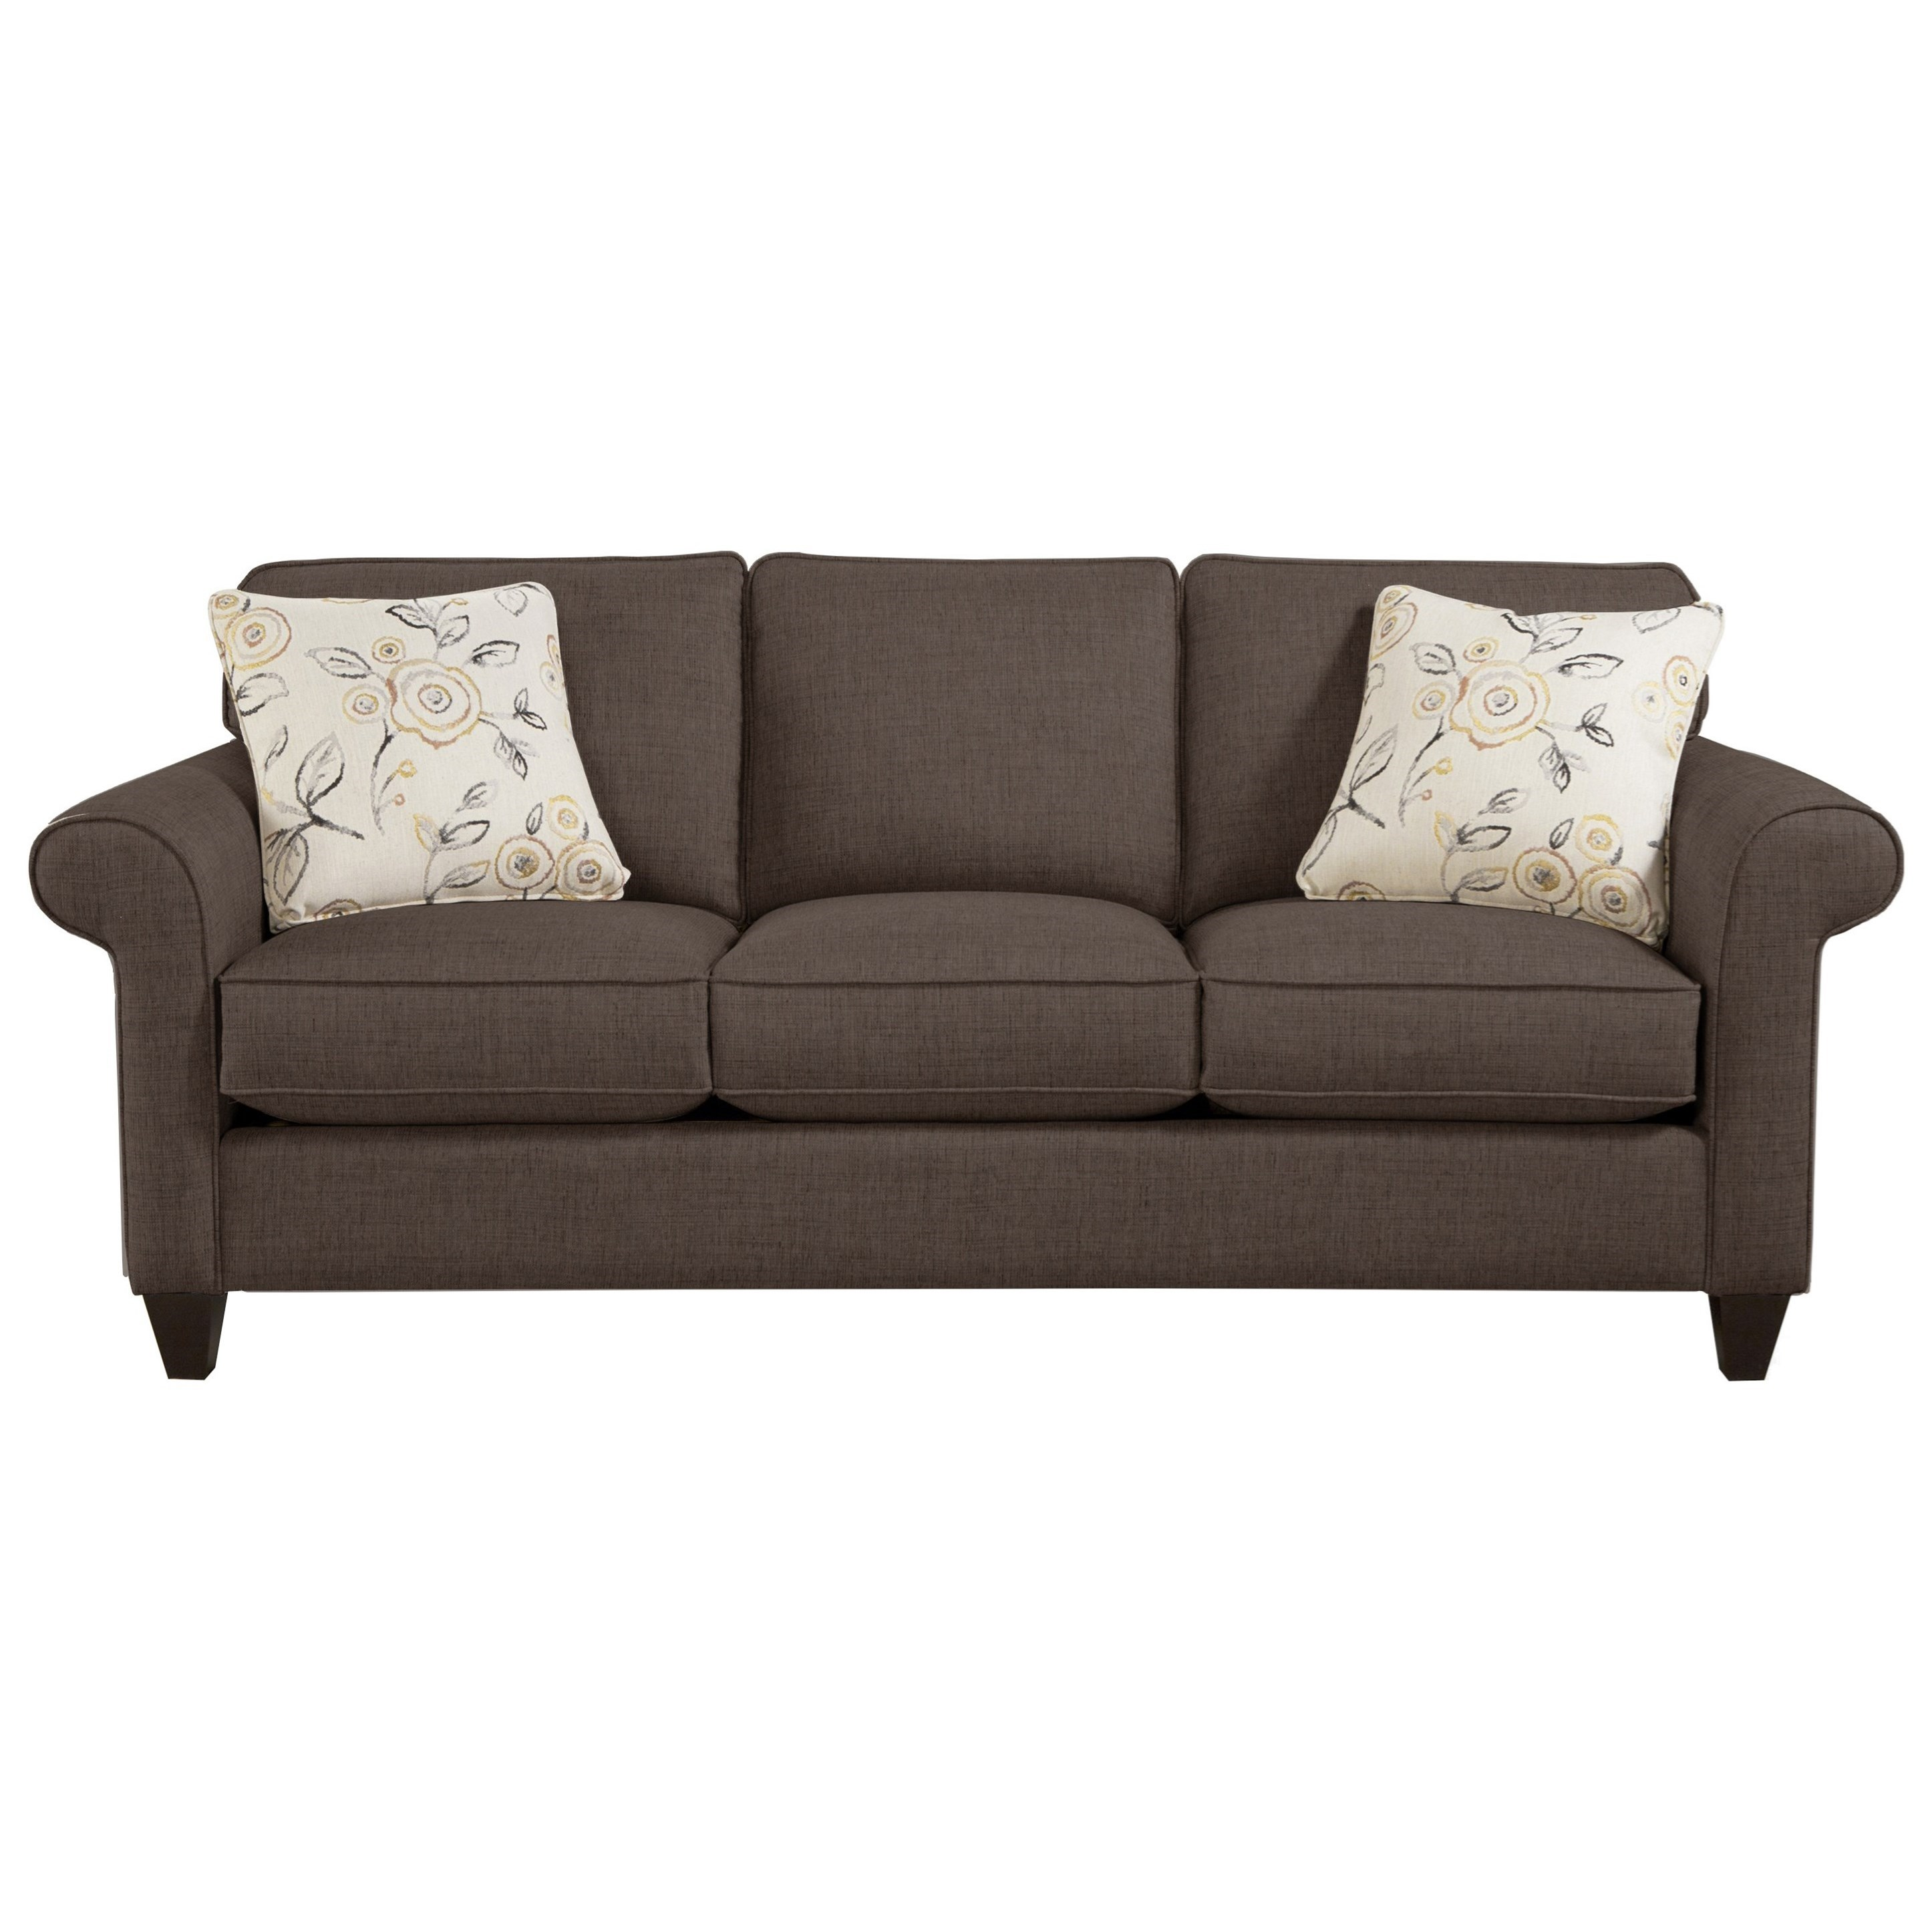 7421 Sofa by Craftmaster at Bullard Furniture